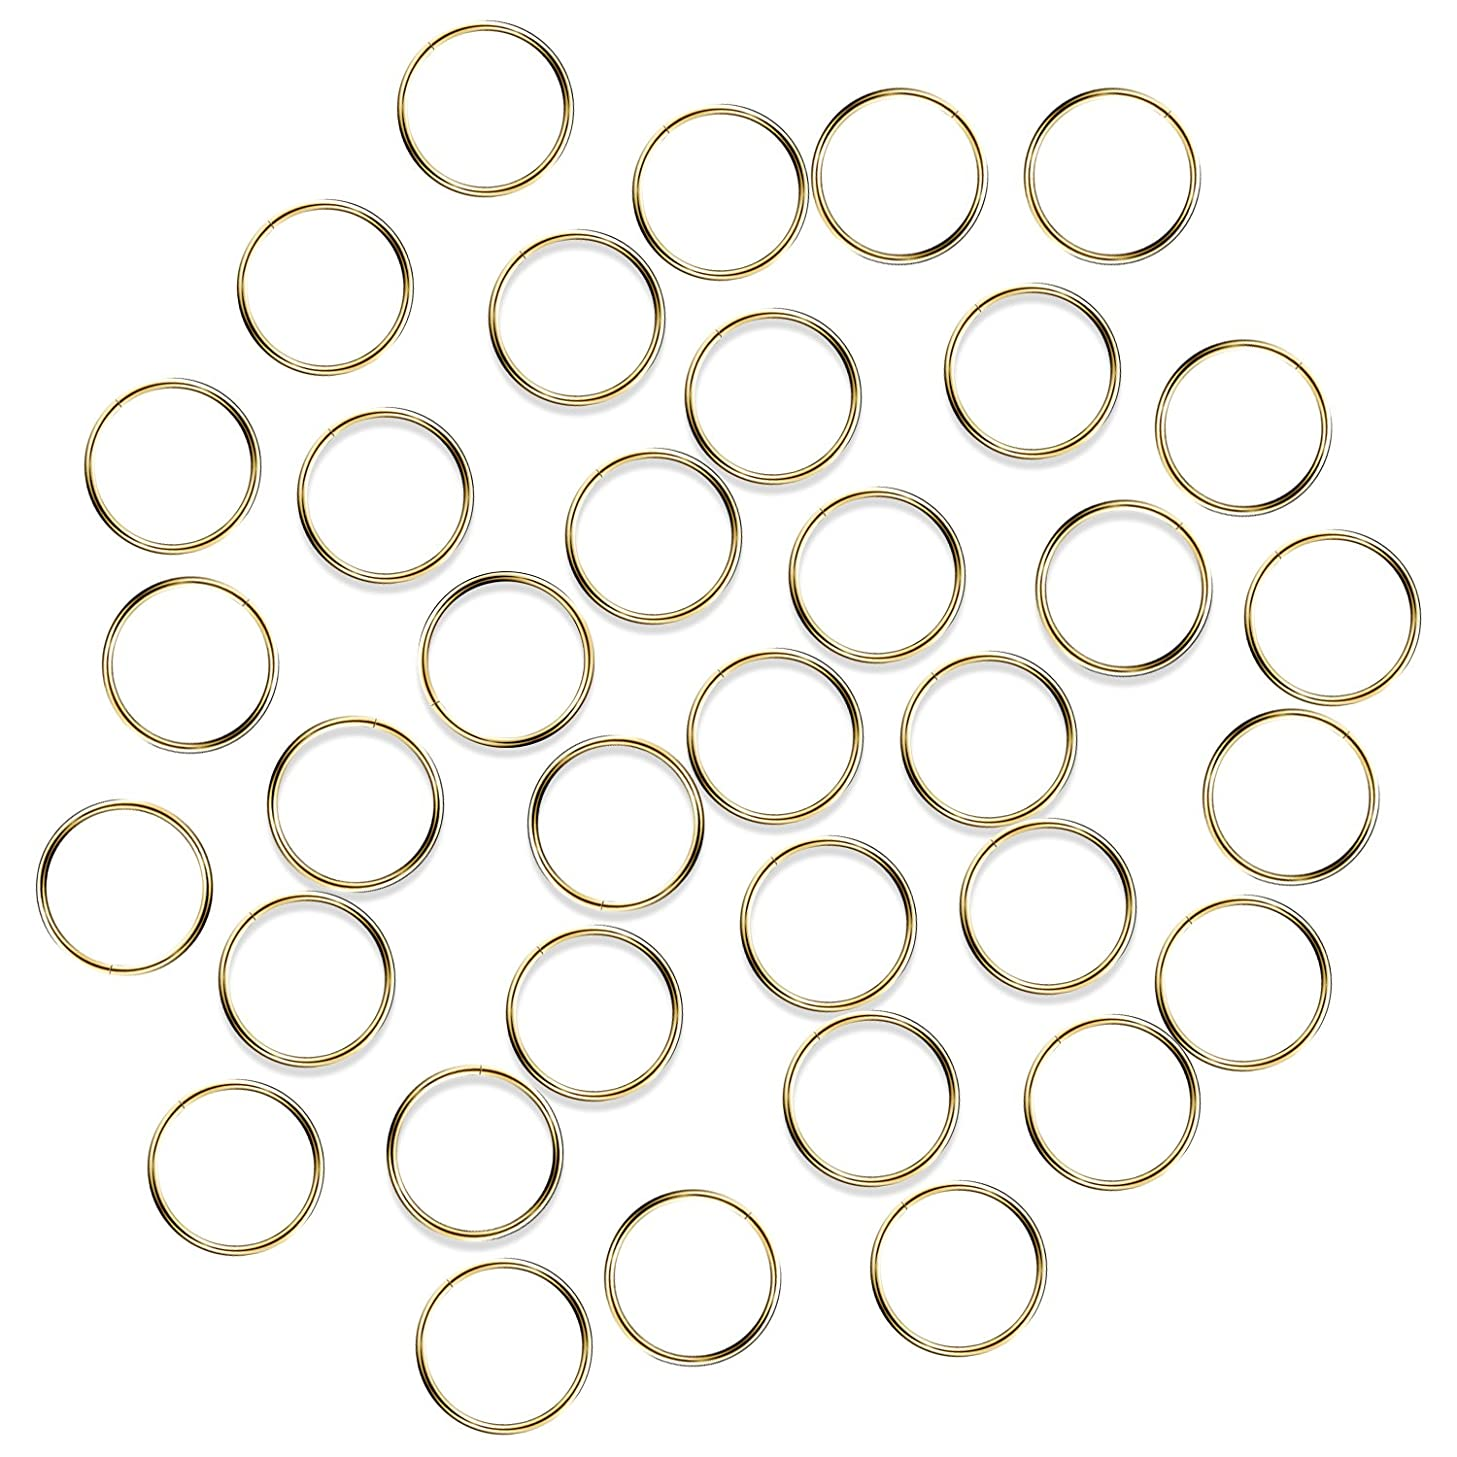 Fushing 100Pcs Stainless Gold Color Split Rings, Crystal Chandeliers Connectors for Chandelier, Curtain,Suncatchers, Crystal Garland,Necklaces, Keys, Earrings, Jewelry Making (Gold, 14mm)